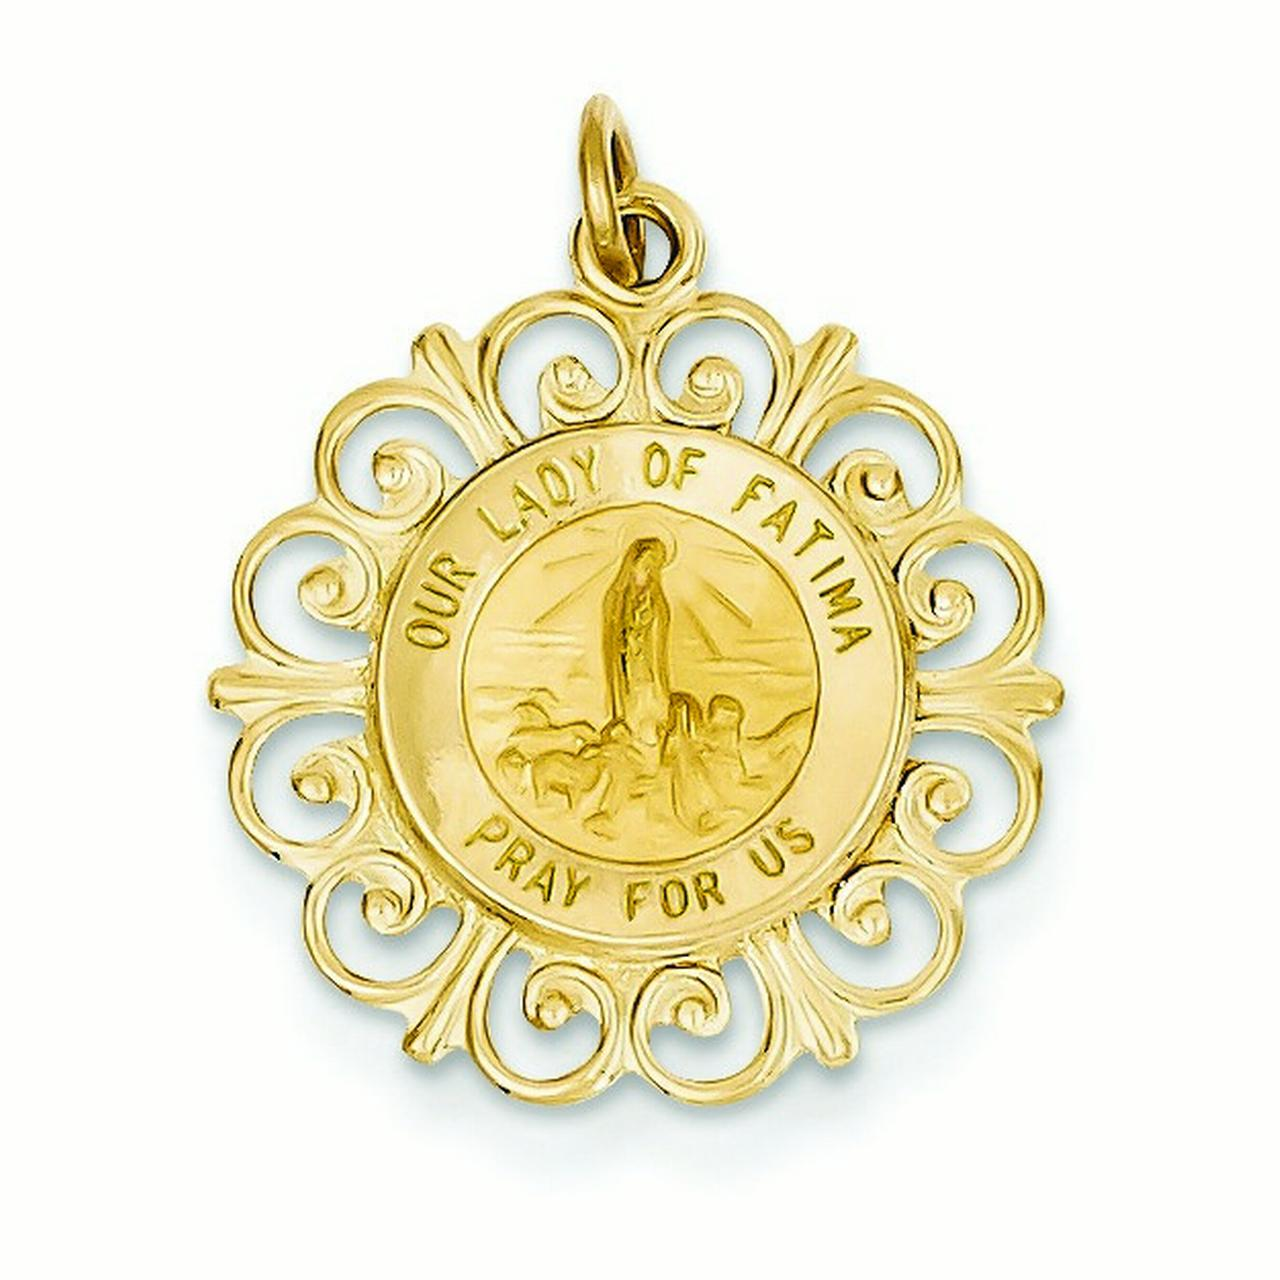 14k Yellow Gold Our Lady of Fatima Medal Pendant - Measures 19x19mm